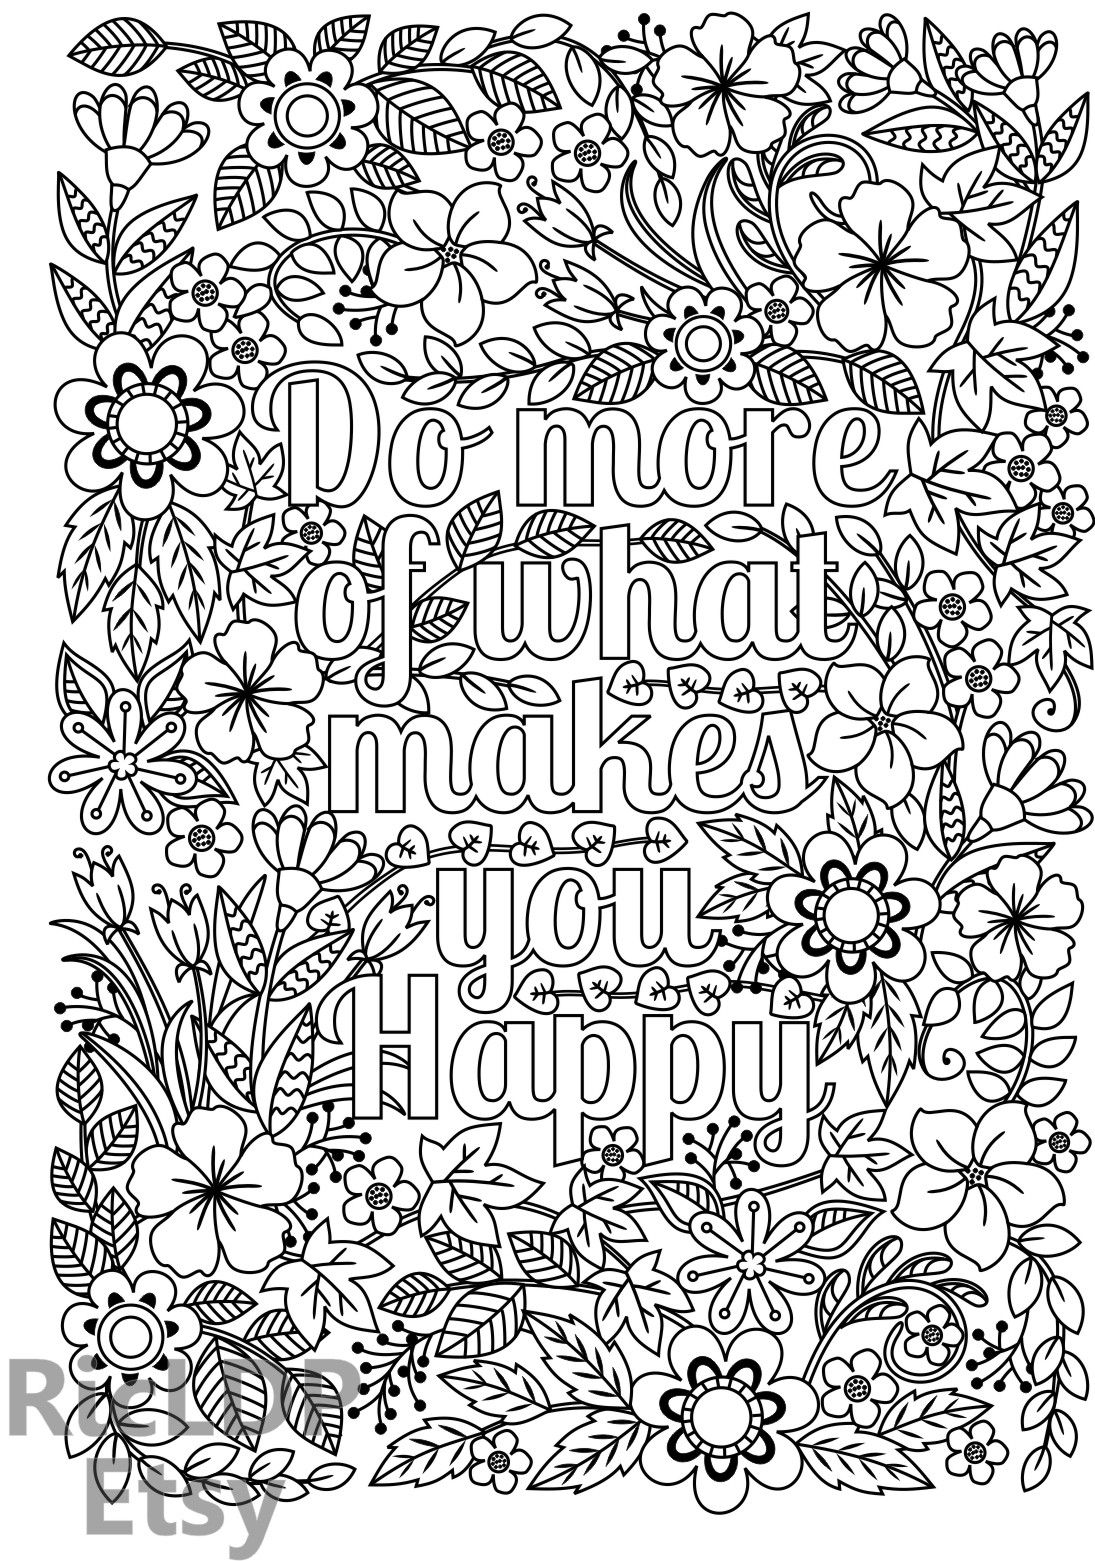 Do More Of What Makes You Happy Printable Coloring Page Downloadable Quote Coloring Pages Coloring Pages Flower Coloring Pages